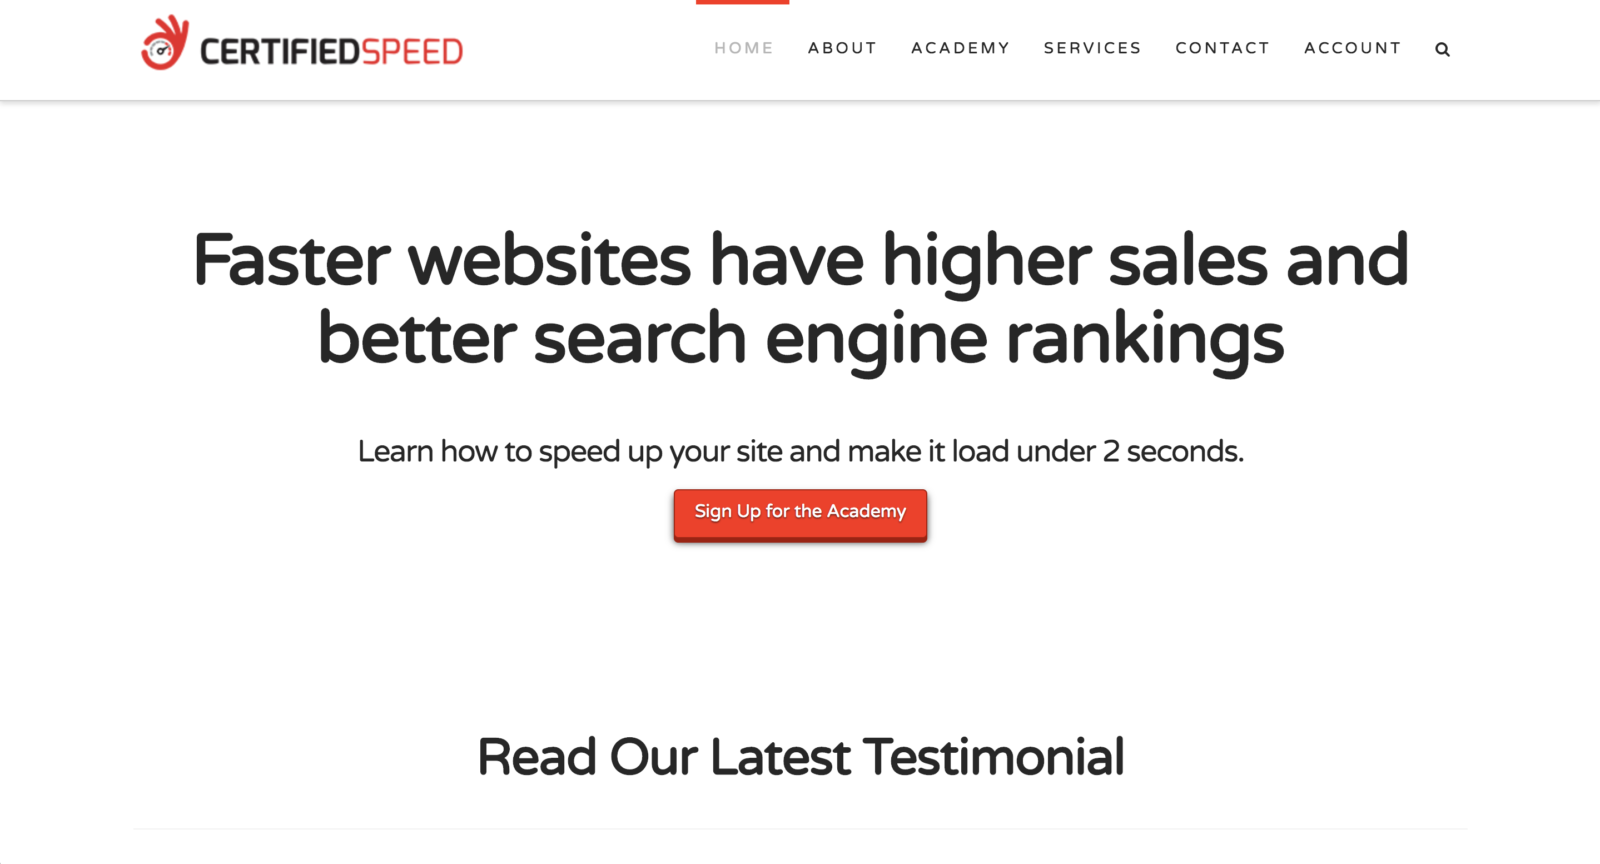 Web Design Client - Certified Speed